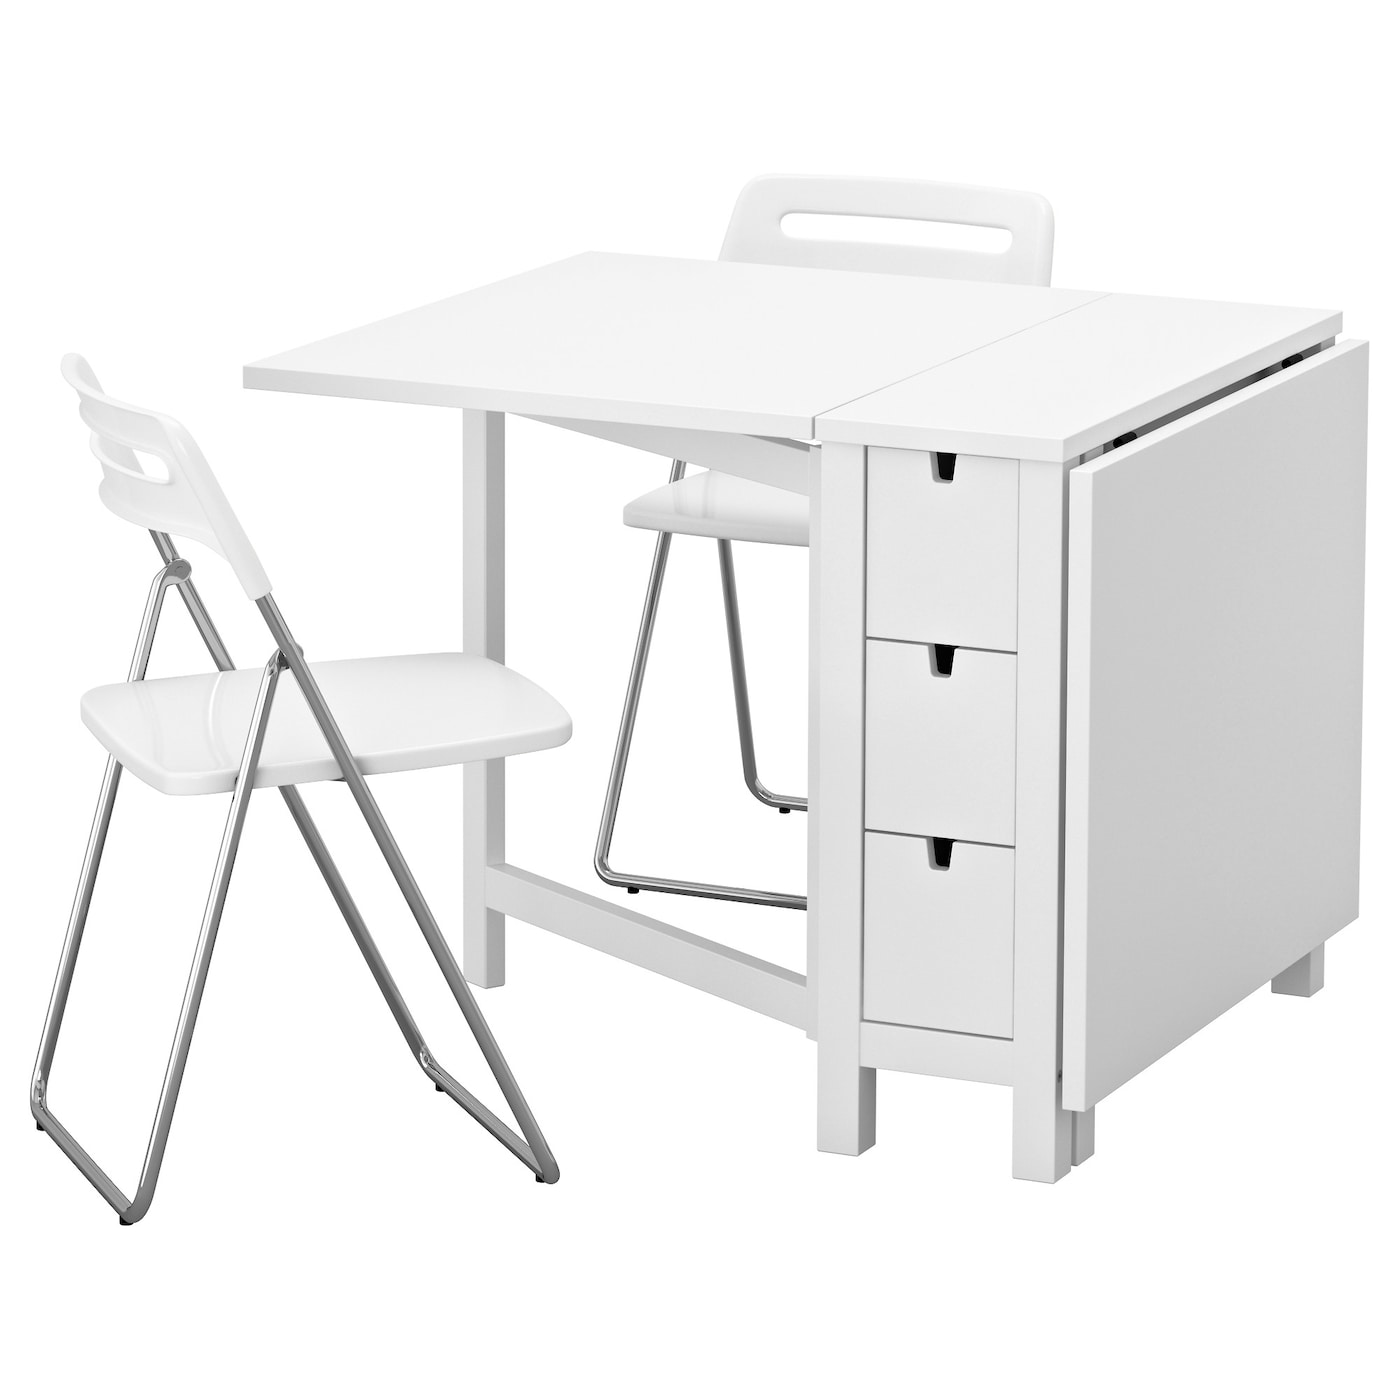 nisse norden table and 2 folding chairs white 89 cm ikea. Black Bedroom Furniture Sets. Home Design Ideas